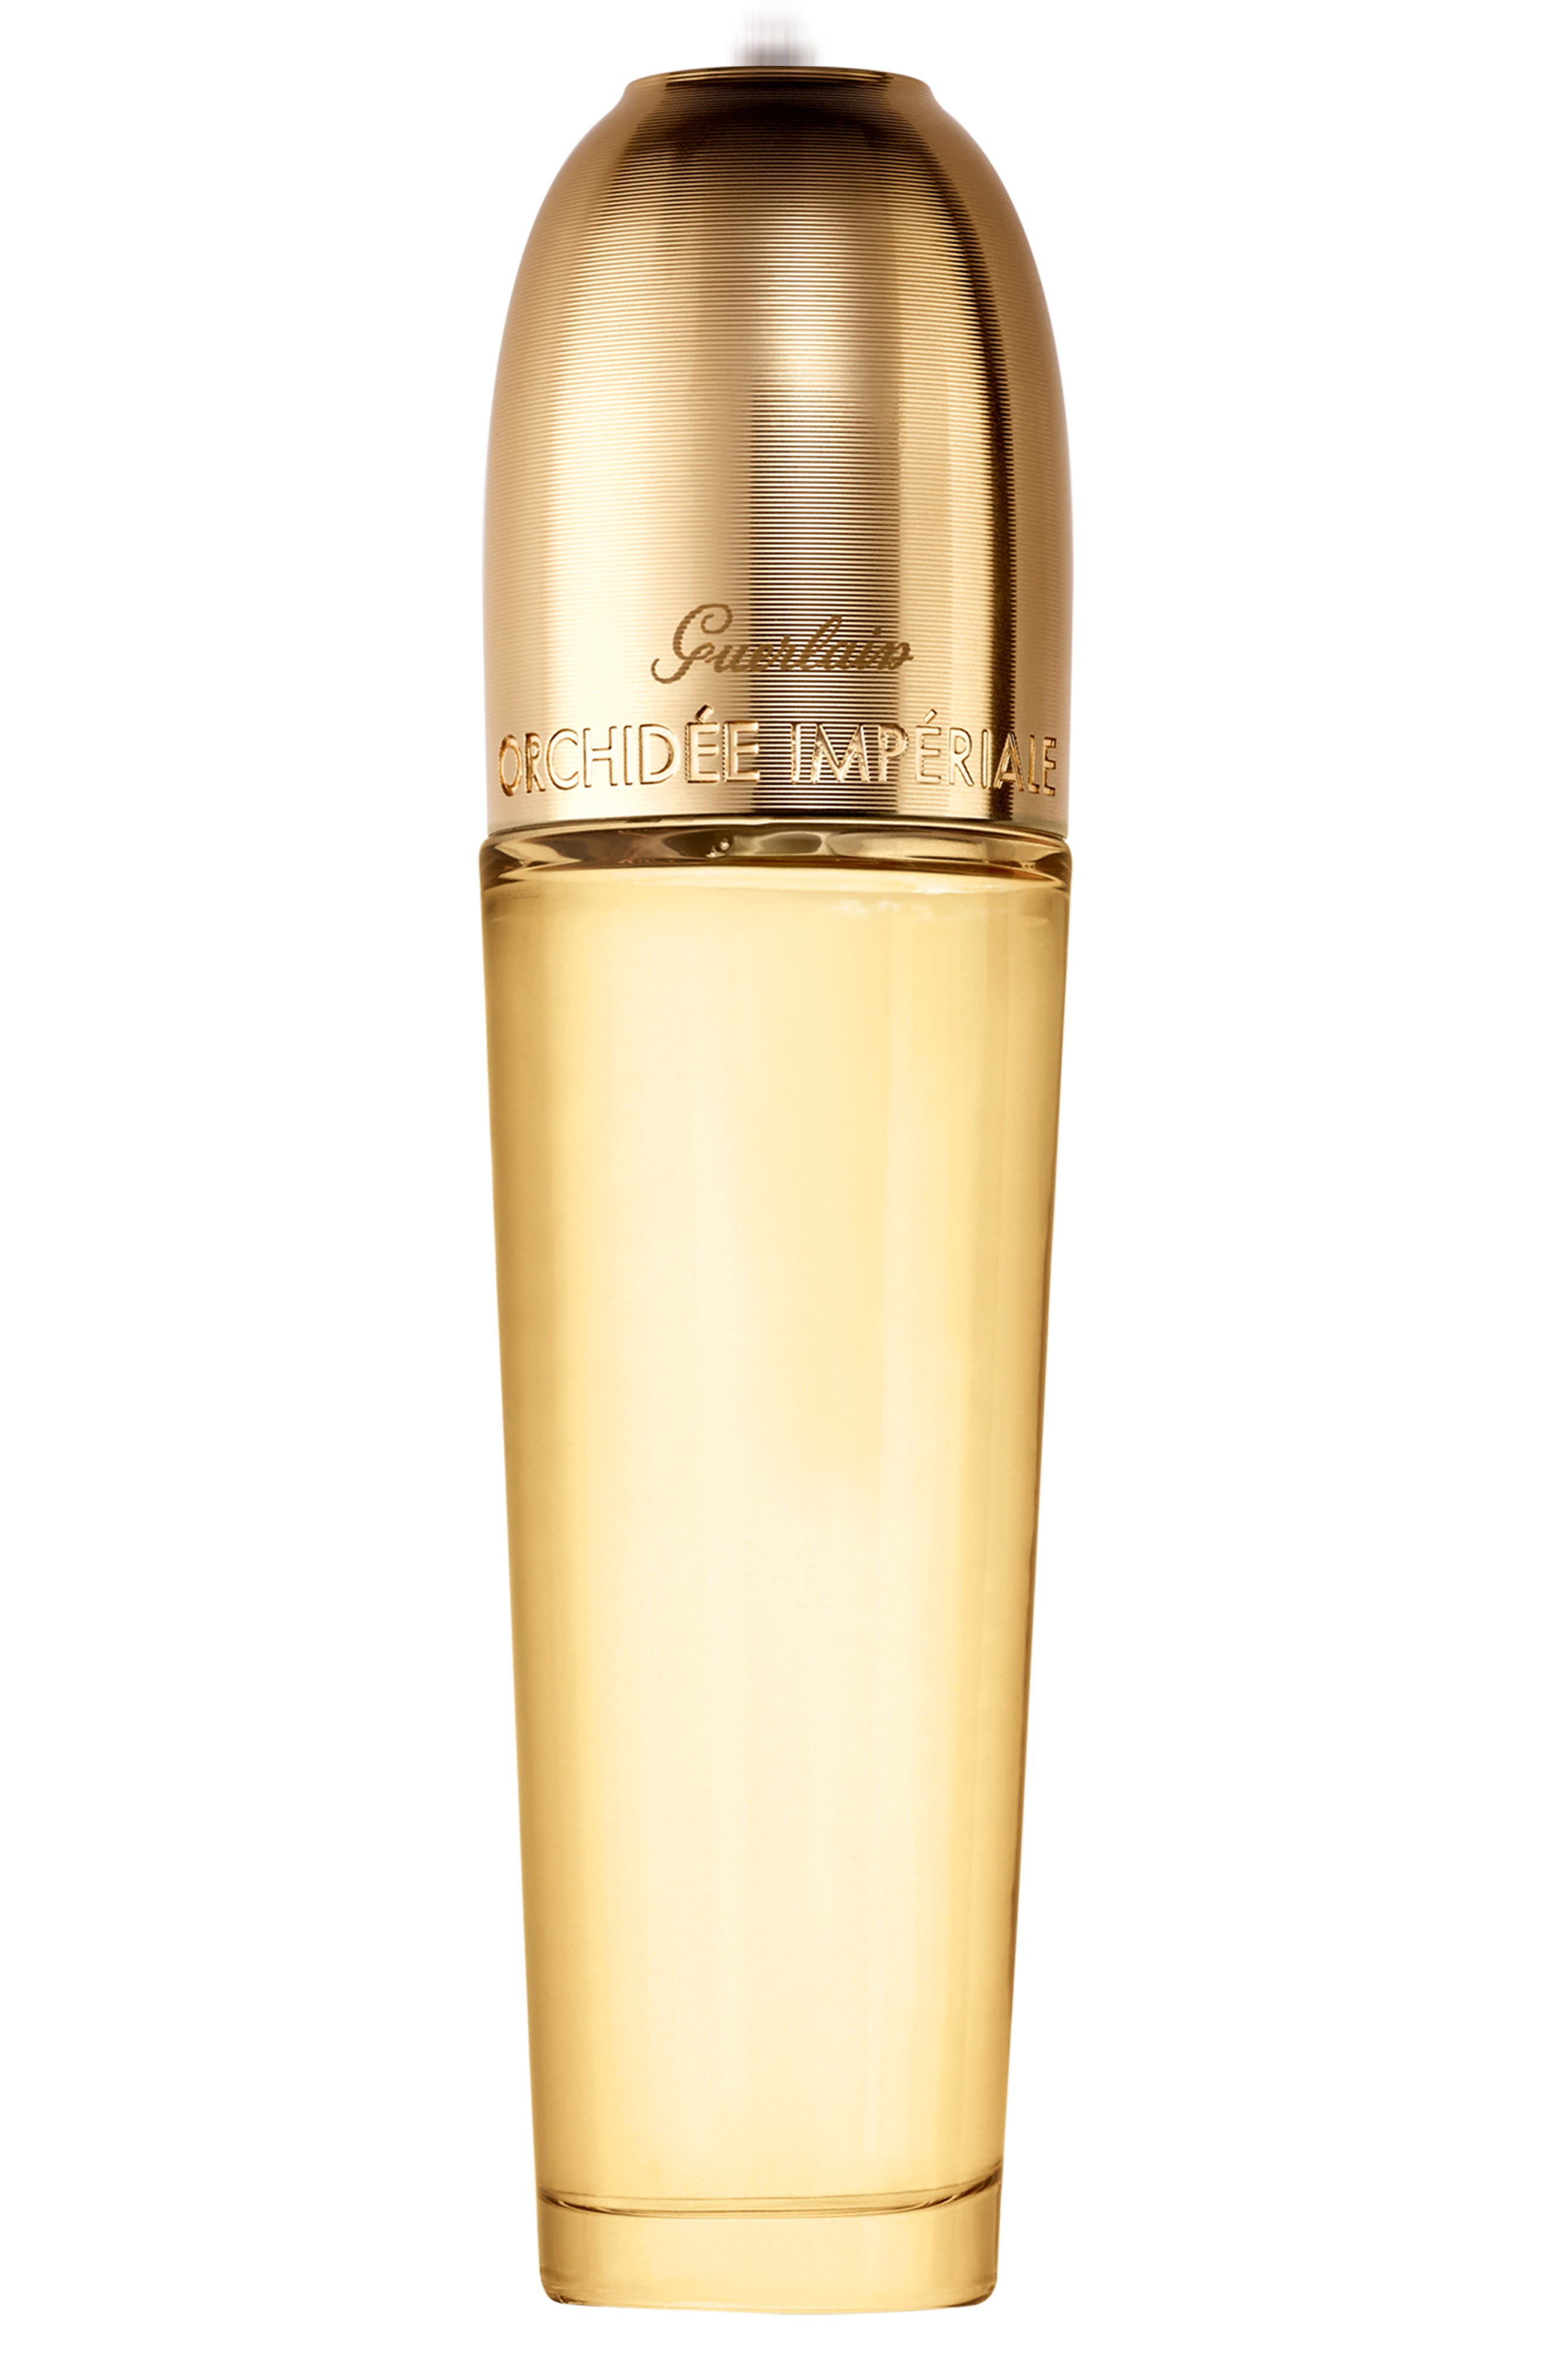 Orchidee Imperiale Imperial Face Oil